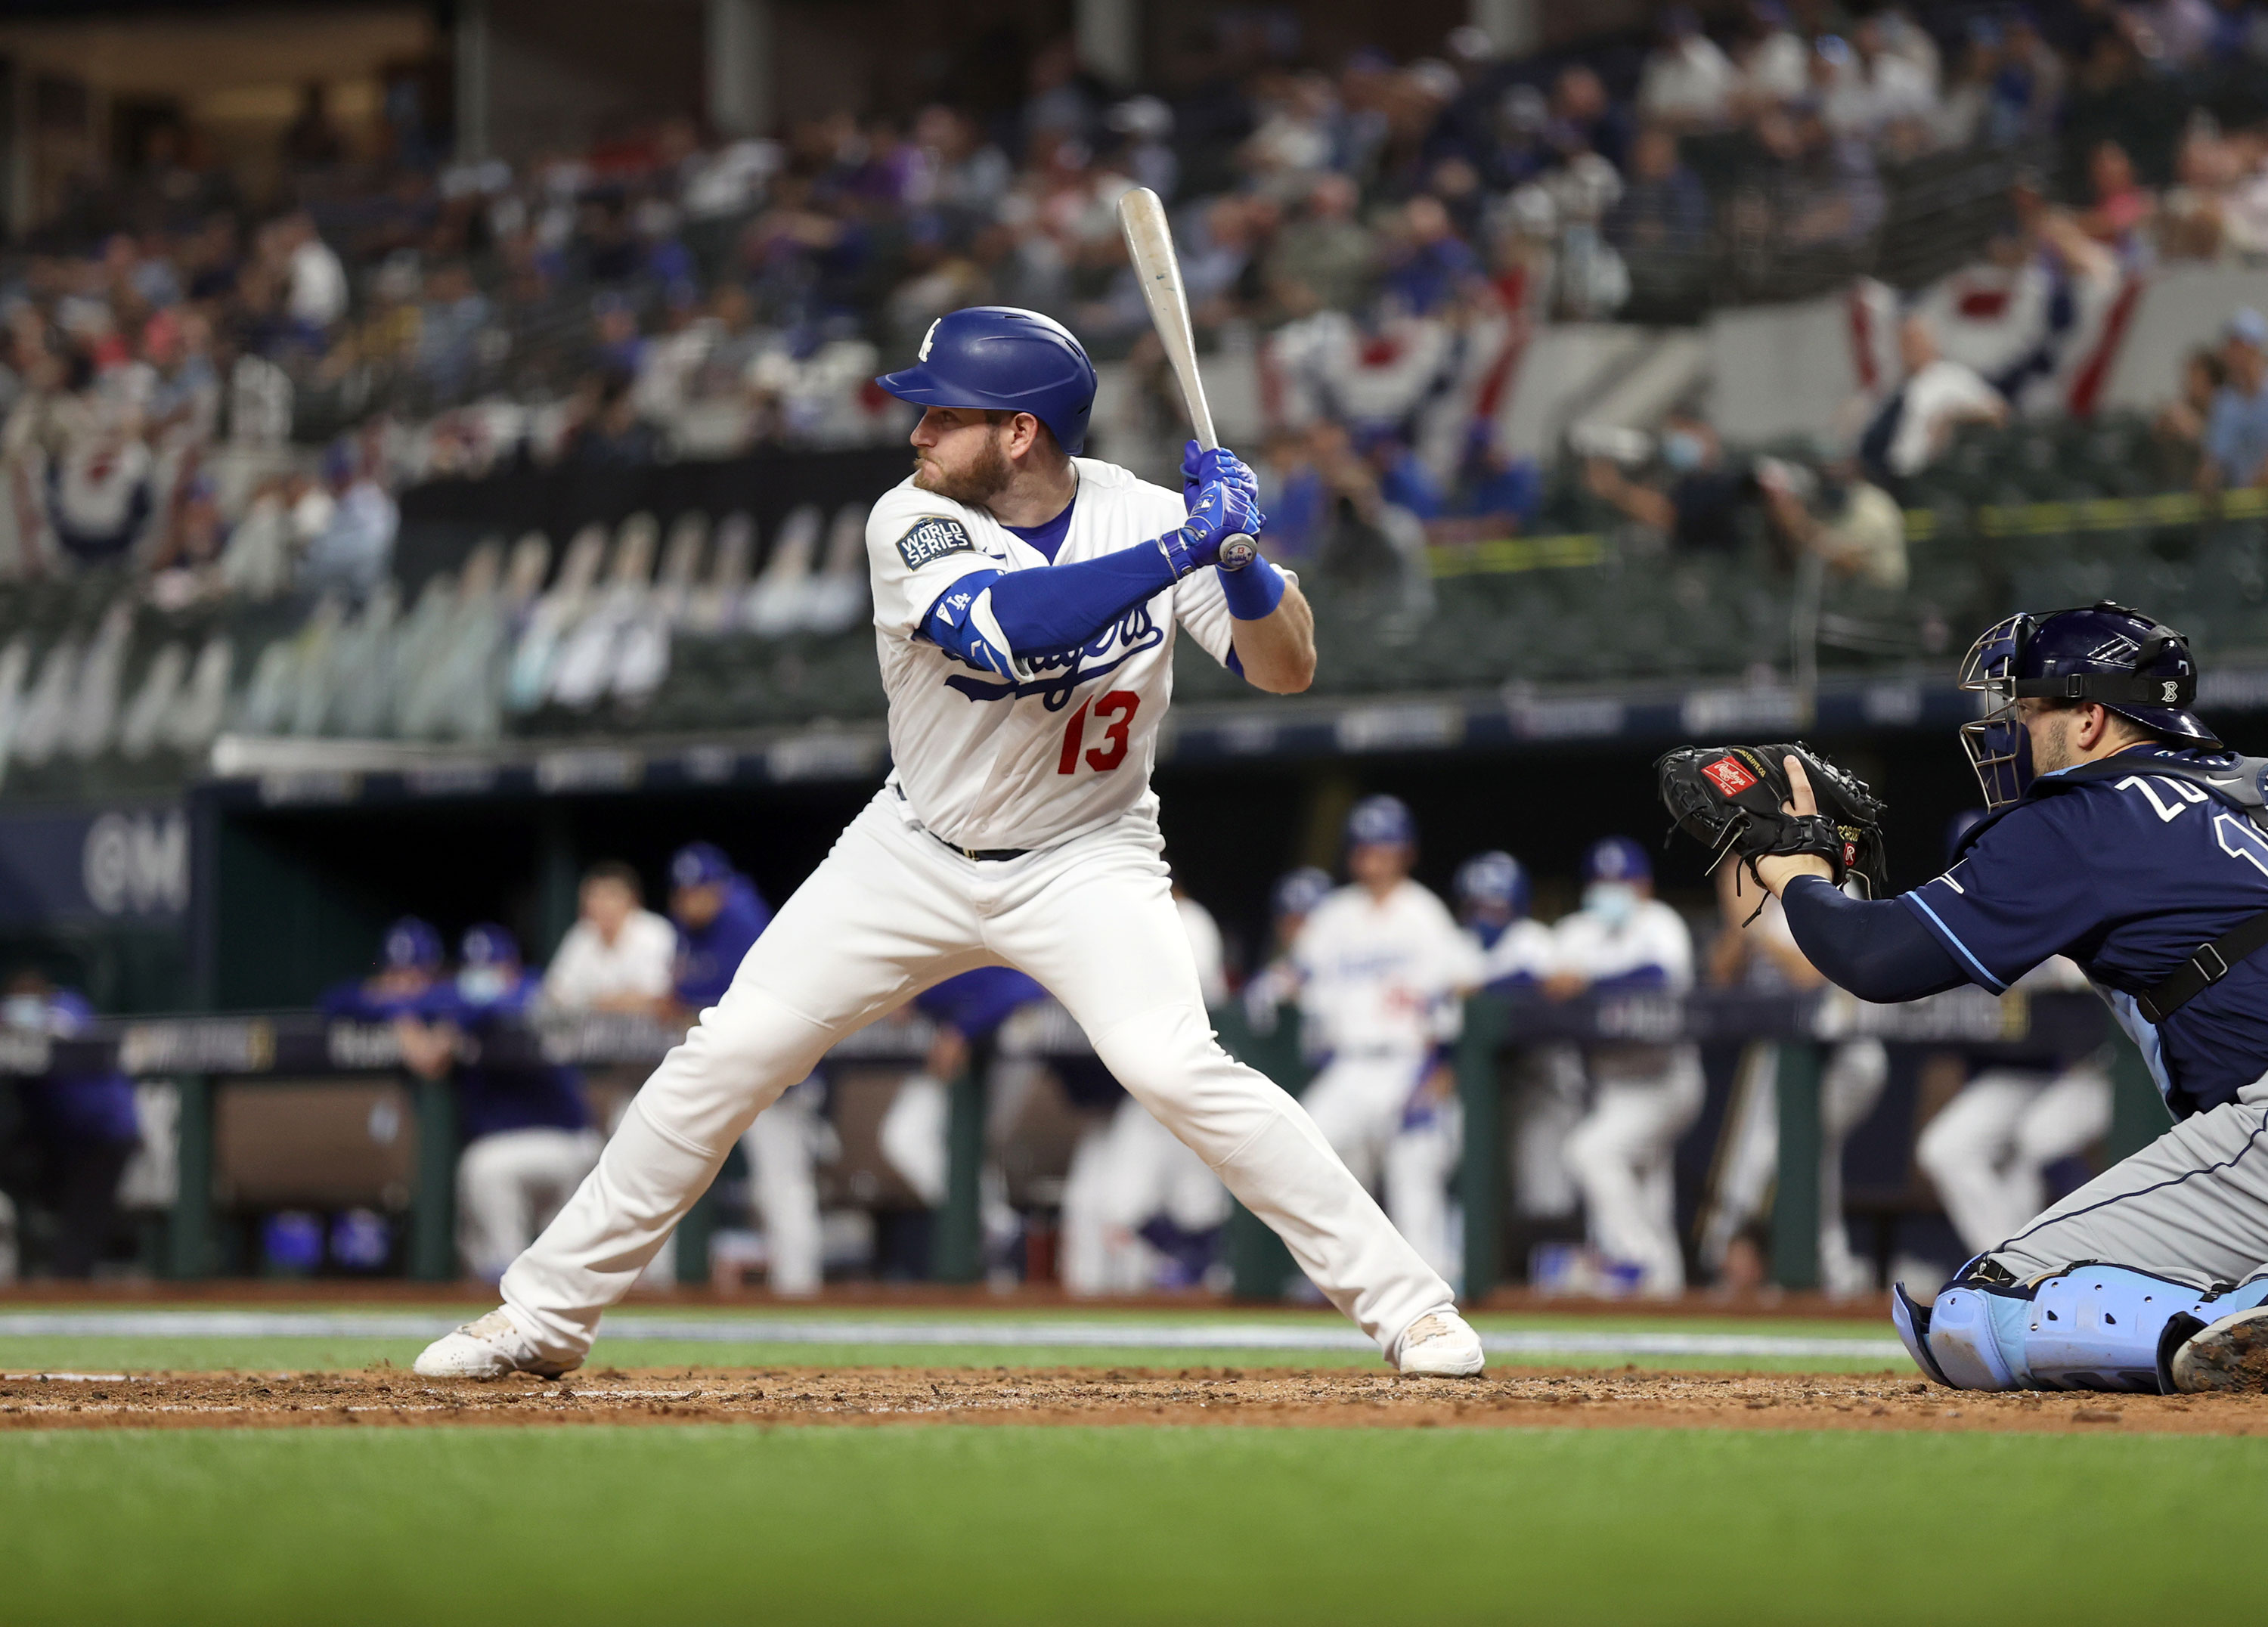 Max Muncy of the Los Angeles Dodgers bats during Game 1 of the 2020 World Series between the Los Angeles Dodgers and the Tampa Bay Rays on October 20 in Arlington, Texas.